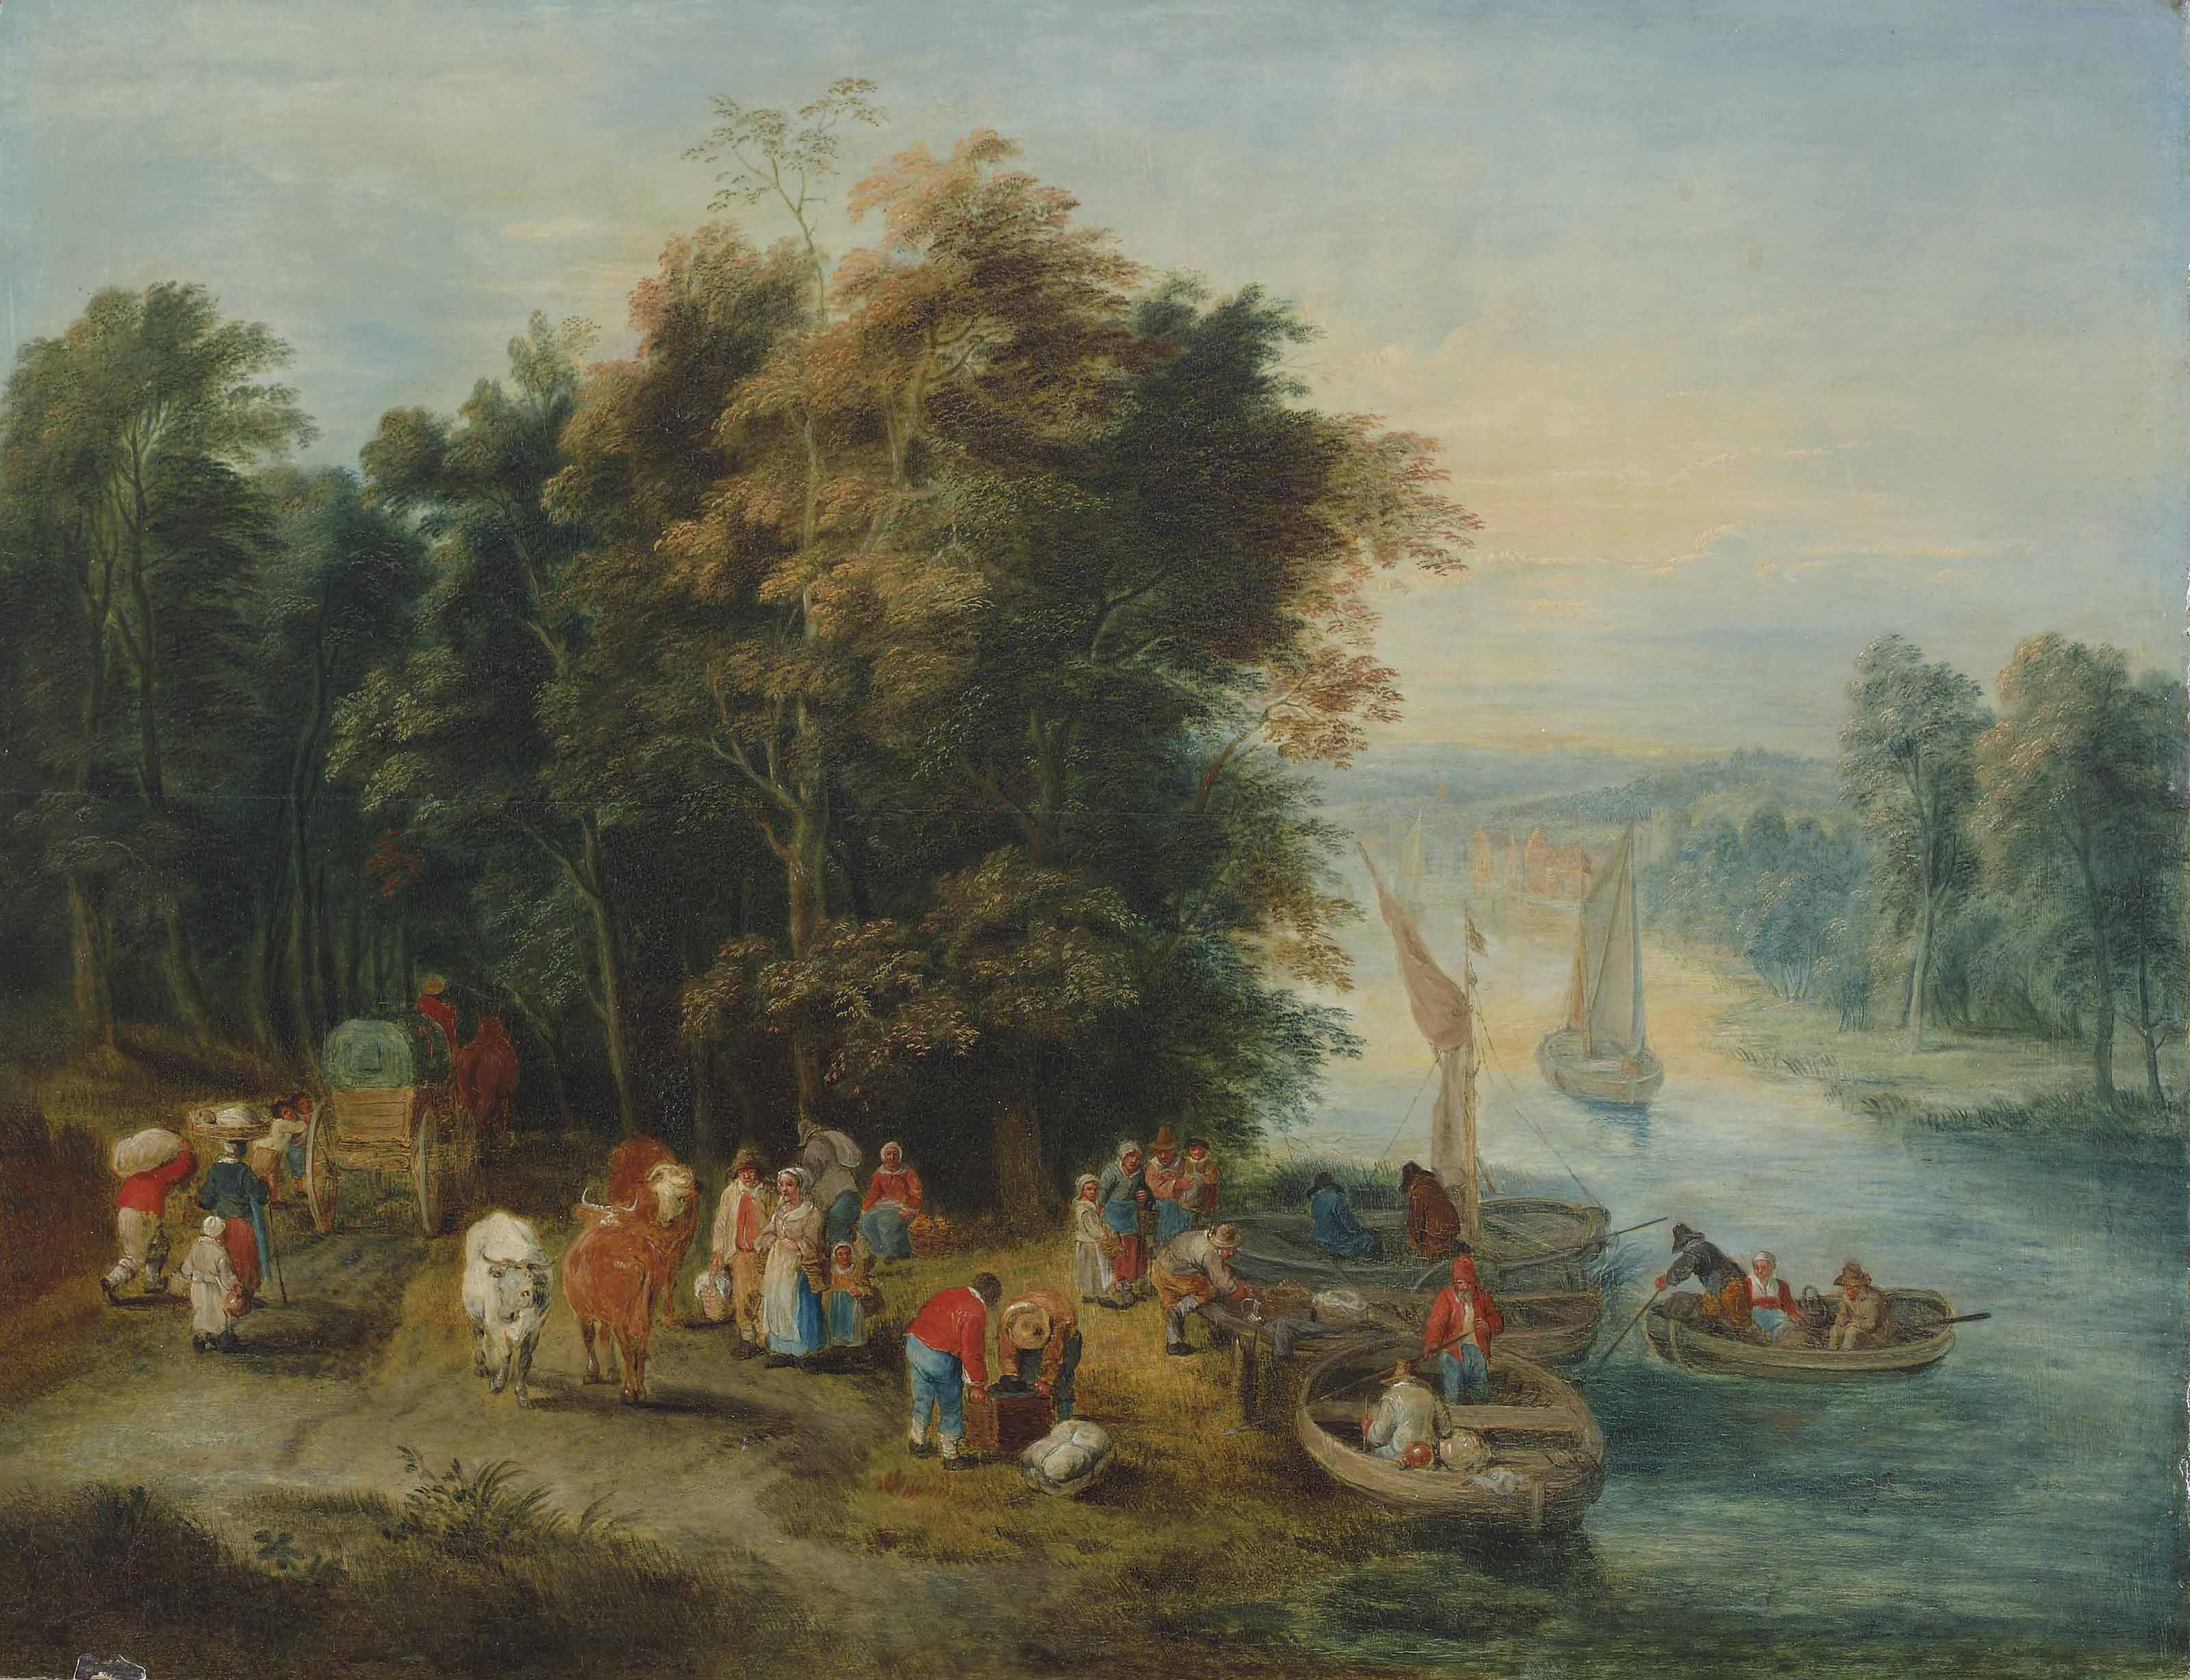 A wooded river landscape with travellers on a river bank and figures in boats